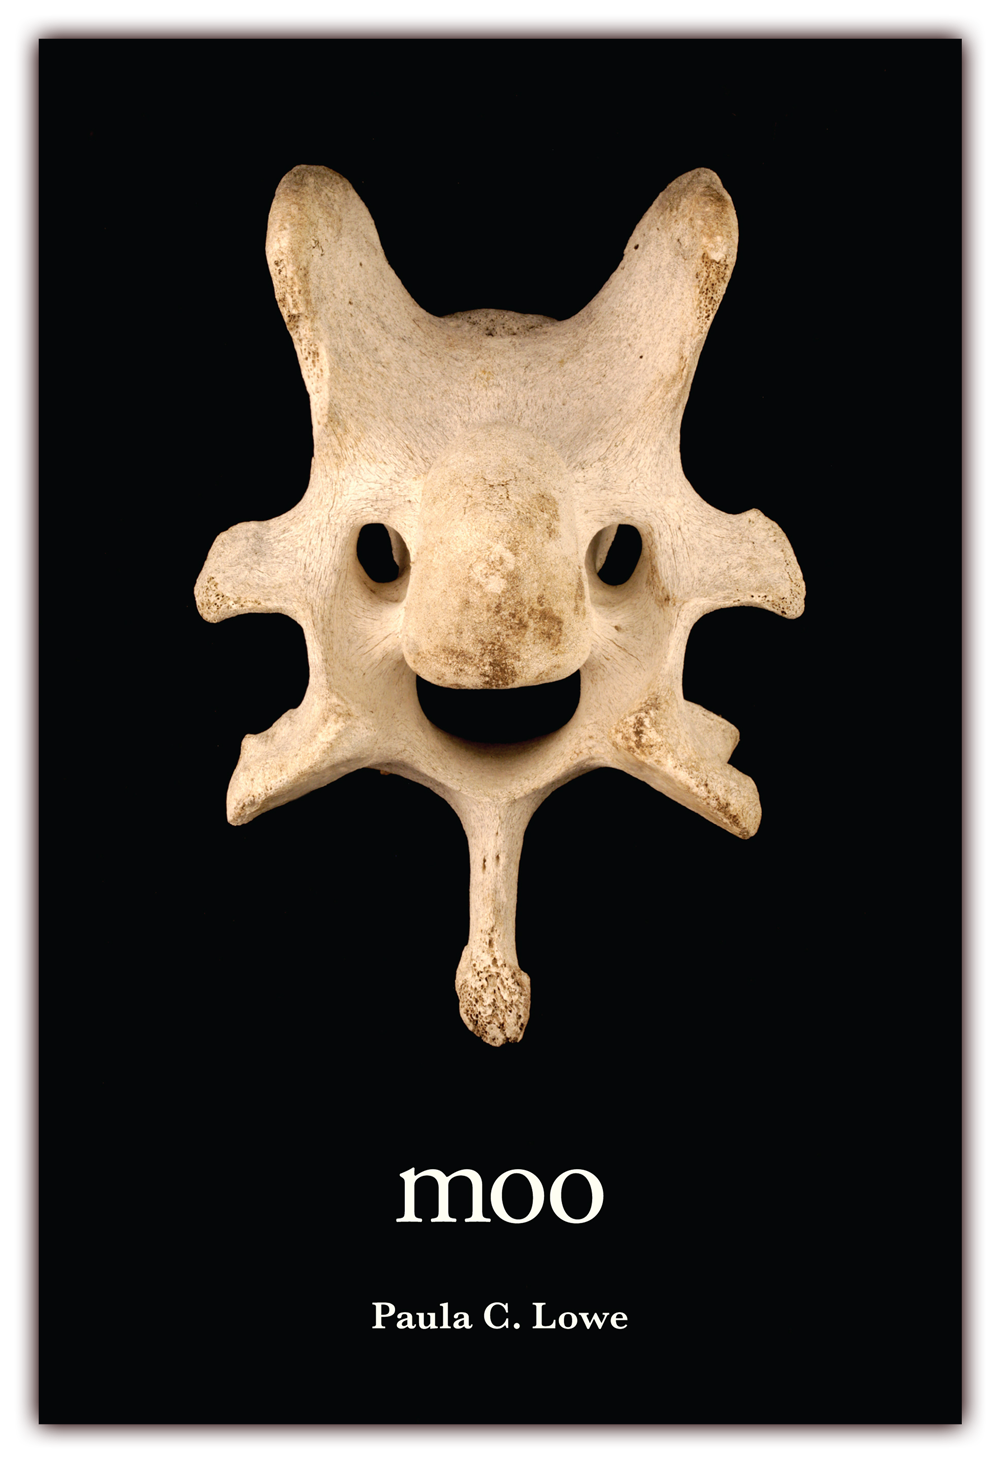 moo   (front cover) Poems by Paula C. Lowe  CLICK IMAGE TO ENLARGE